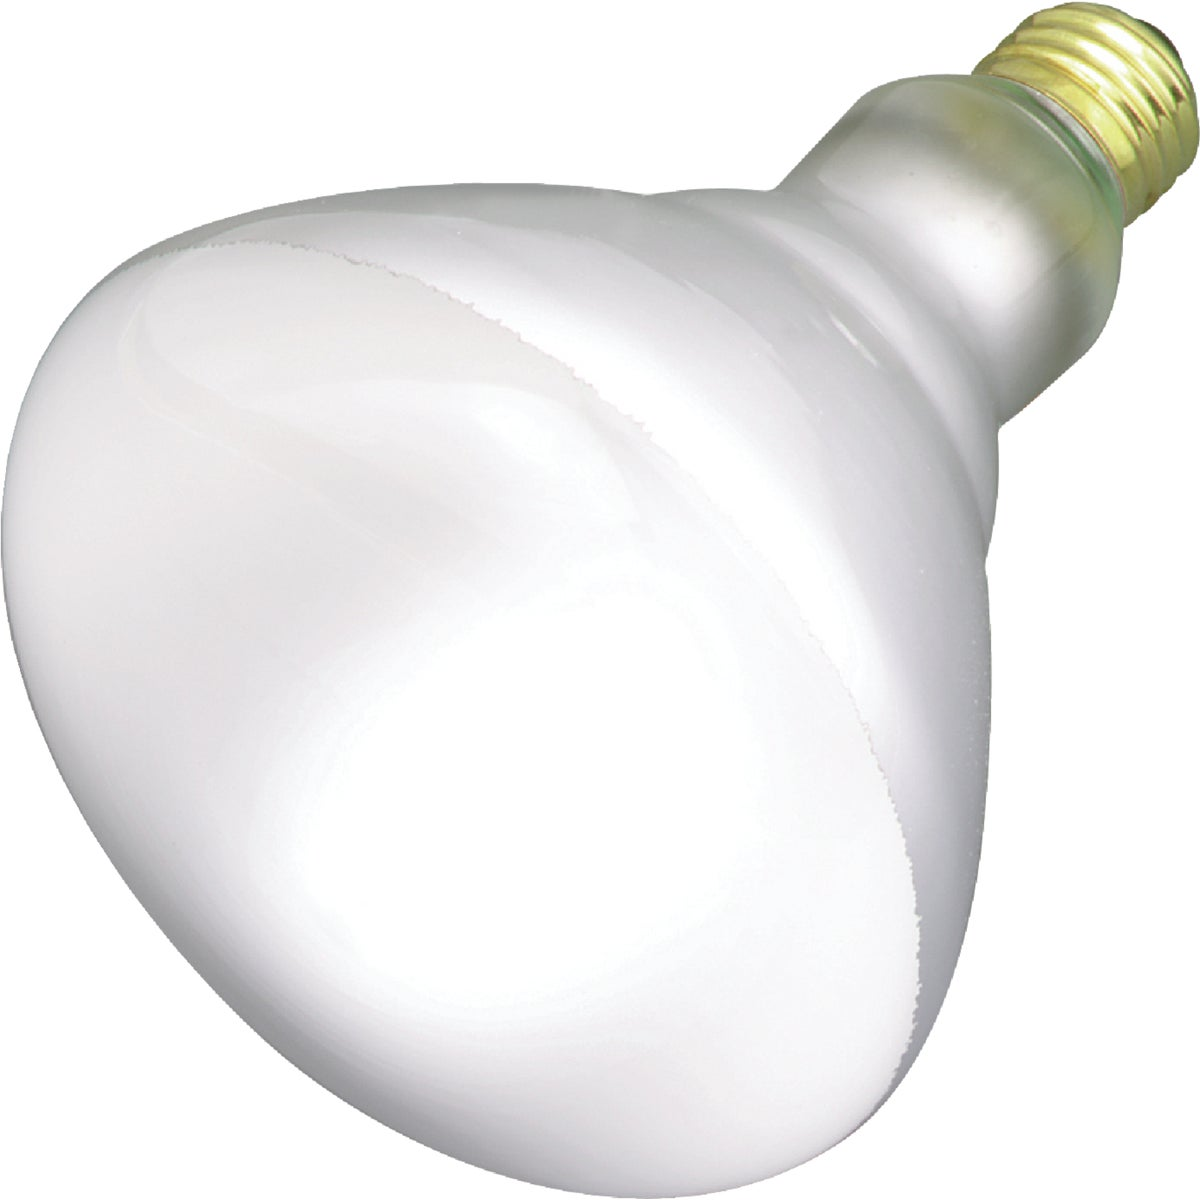 65W R40 REVEAL BULB - 87904 by G E Lighting